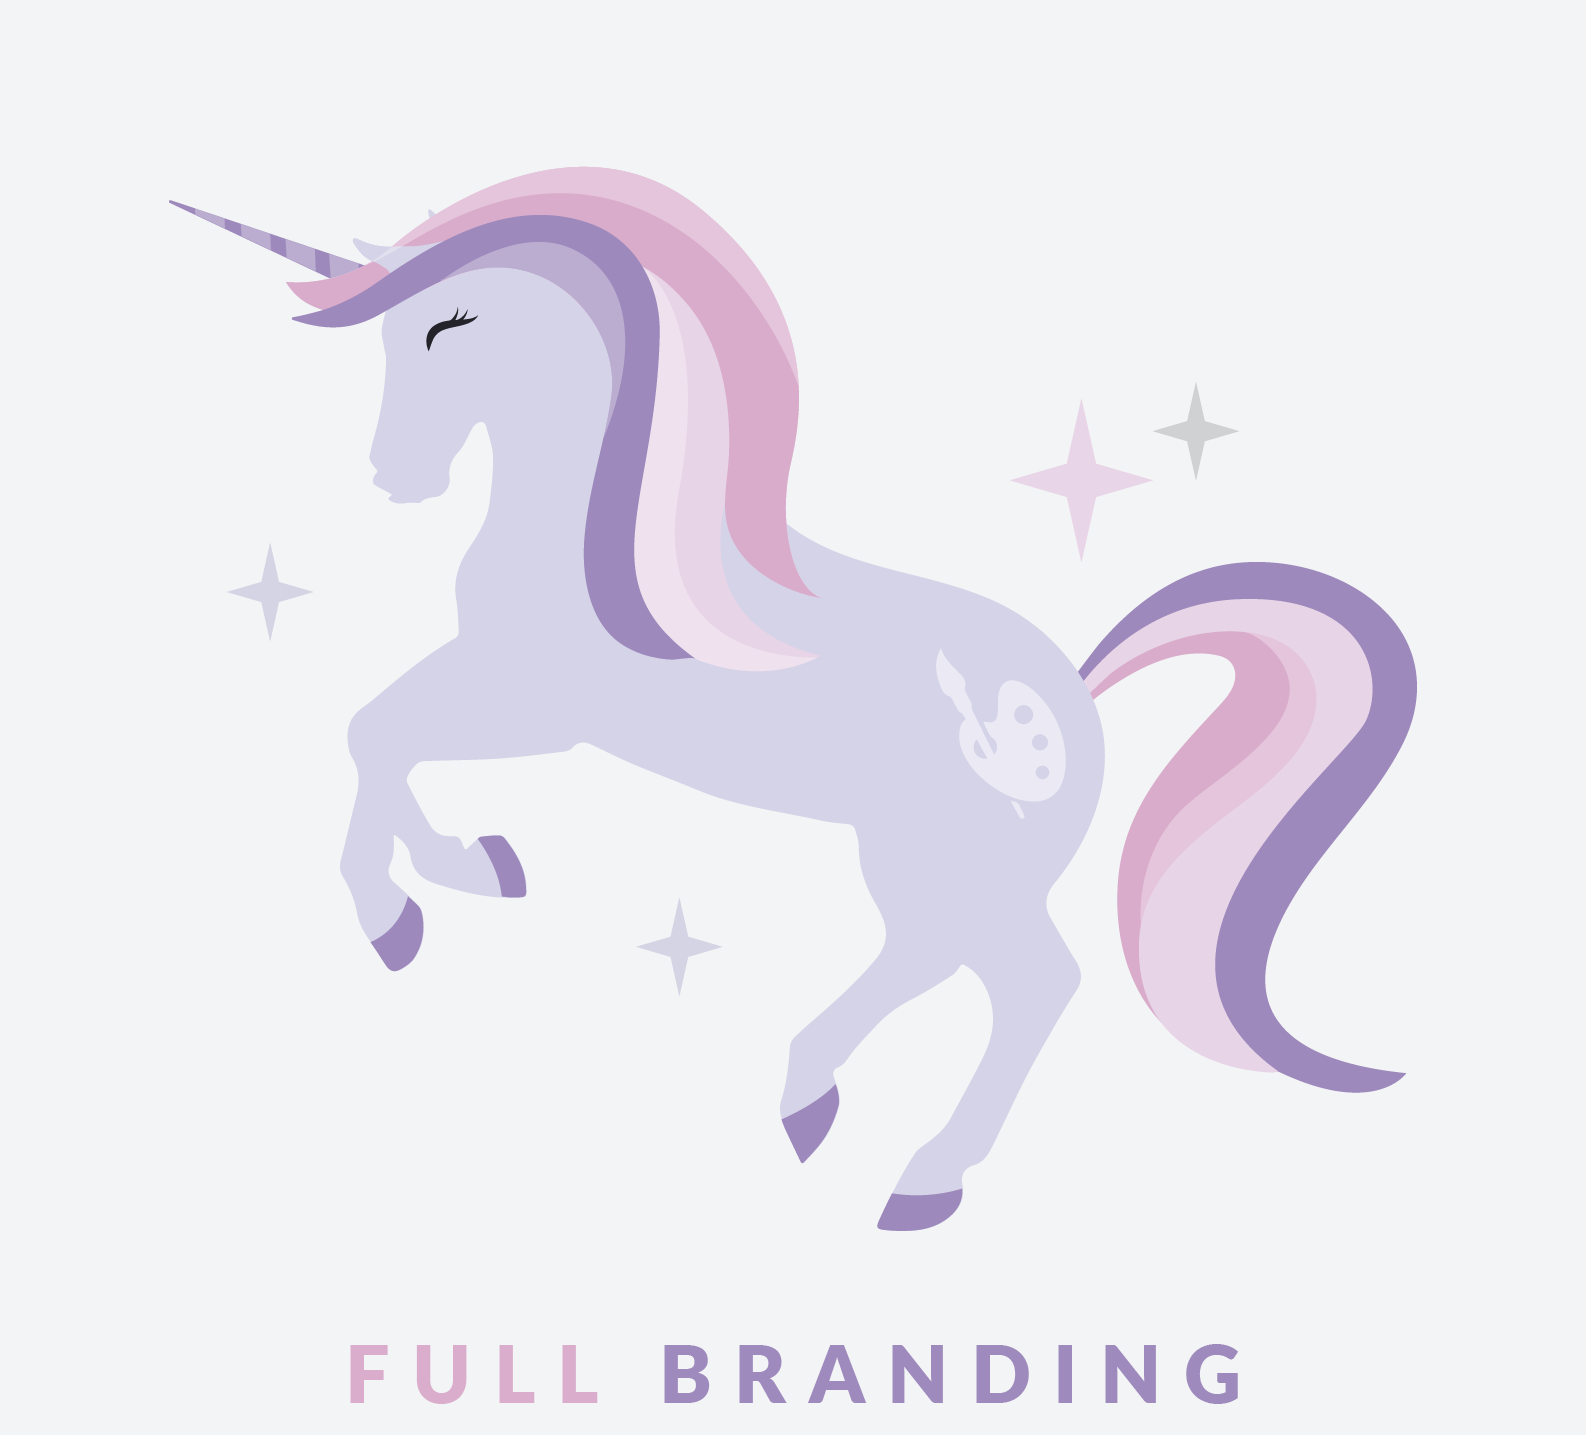 BRAND STYLE GUIDE - Get all the unique, beautifully branded assets you need to finally implement the business of your dreams. No templates, no rules, just my design skills & your passion.